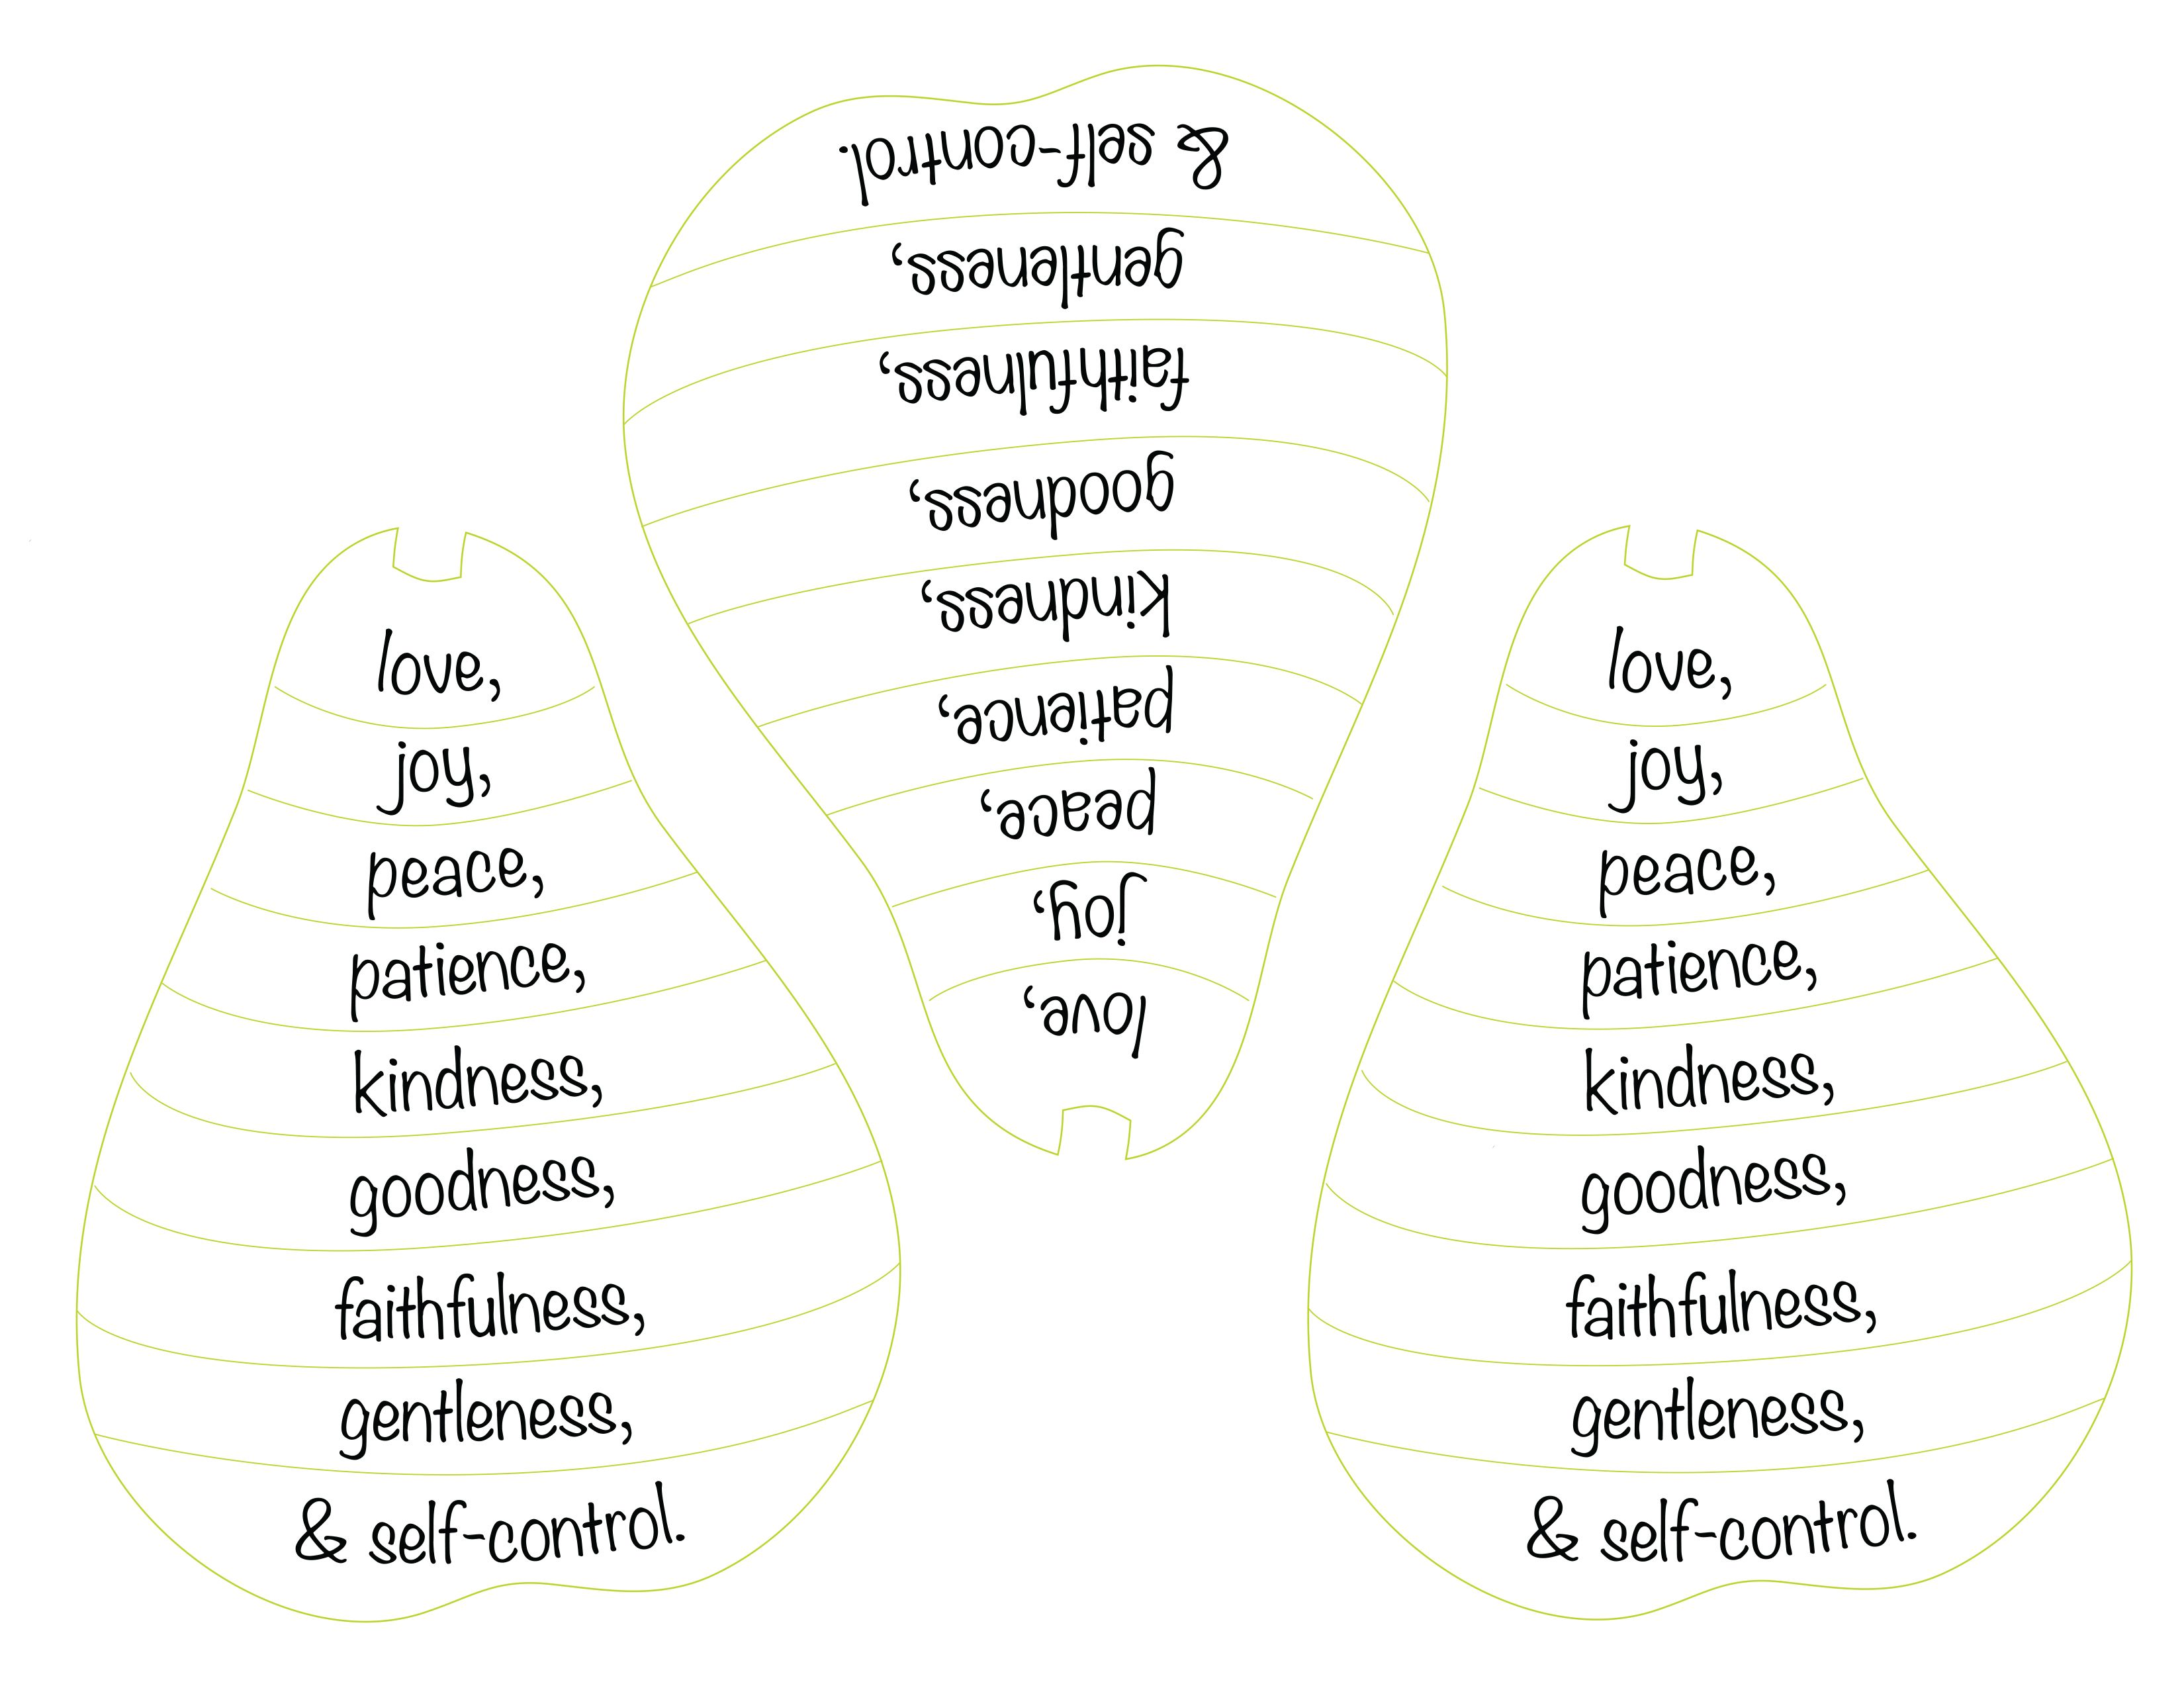 Fruits Of Spirit Craft Strips These Go With The Other Template With Pear Image I Printed Childrens Church Lessons Fruit Of The Spirit Bible Lessons For Kids